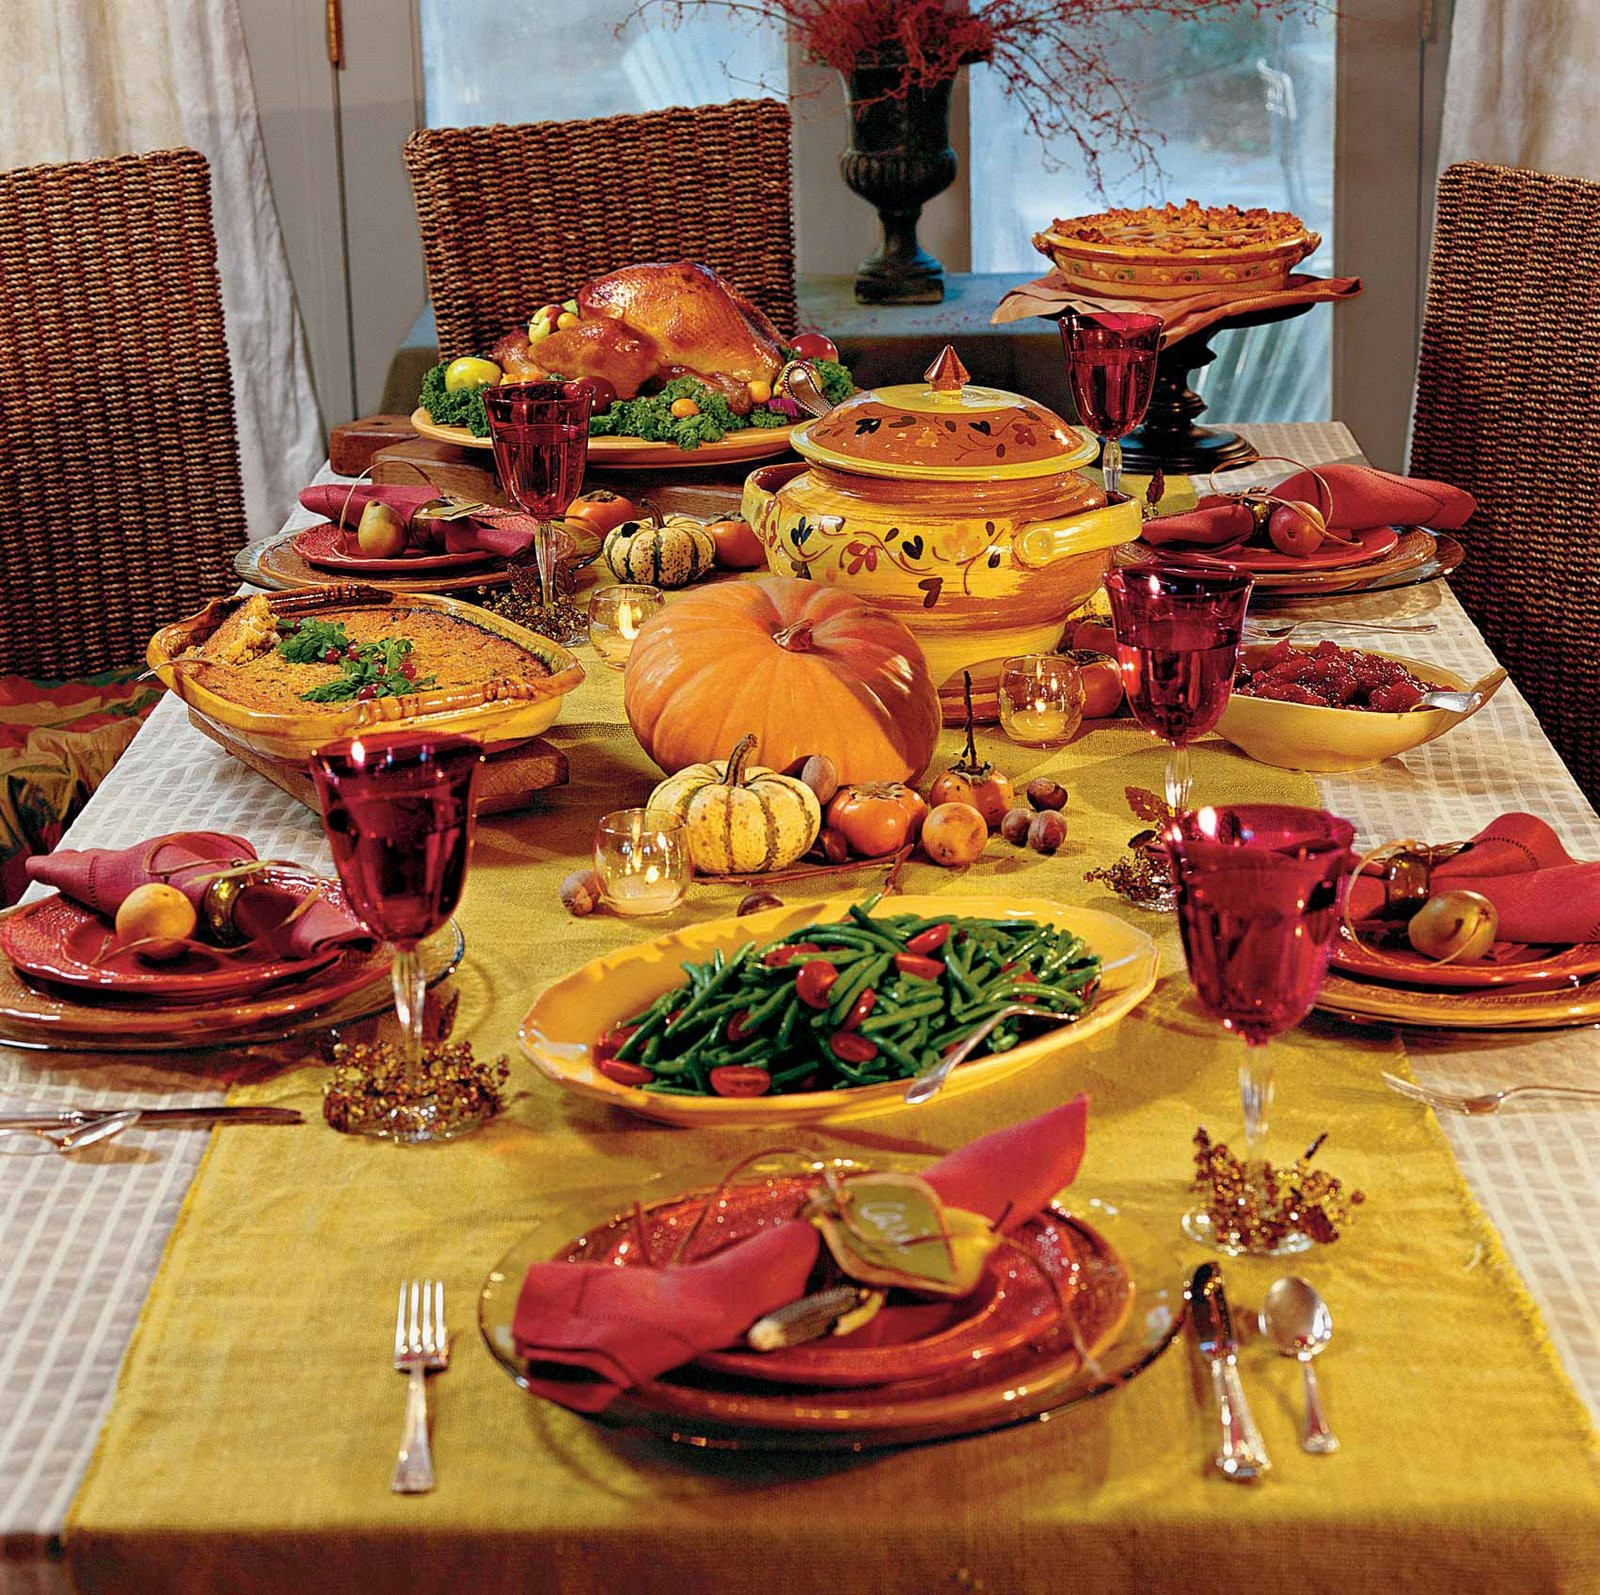 Festival Foods Thanksgiving Dinners  Kumah Home of Neo Zionism Aliyah Revolution and the